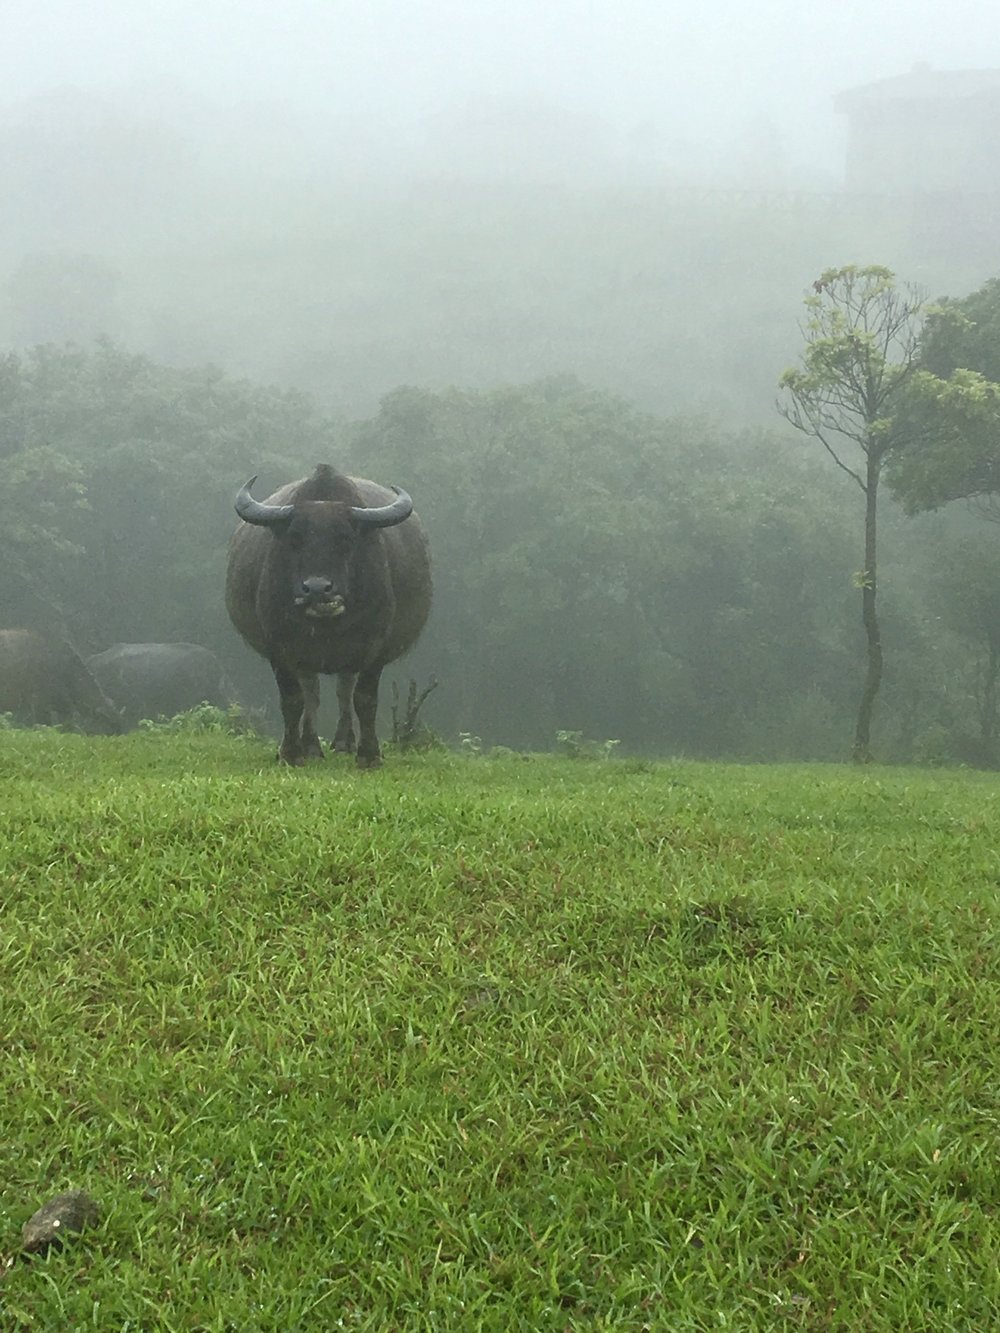 Cow in Taiwan Yangmingshan